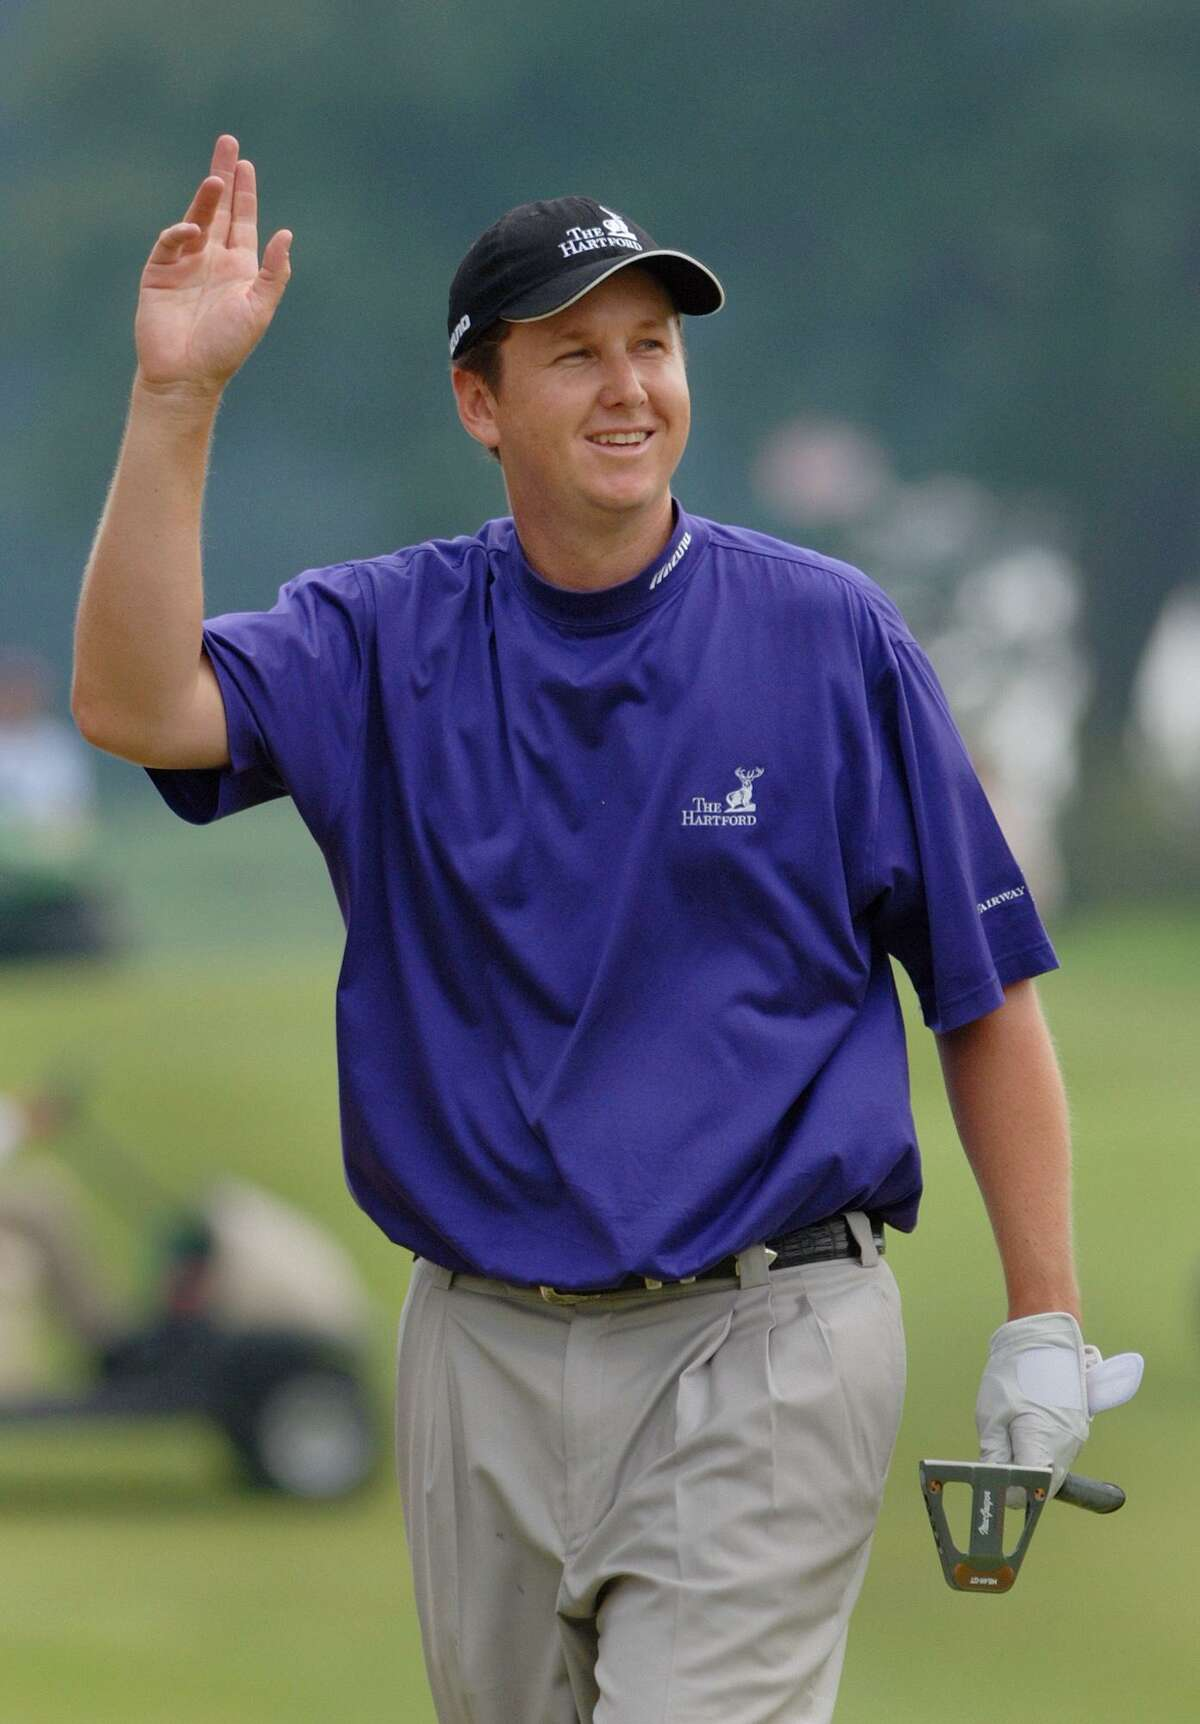 J.J. Henry acknowledges the crowd as he walks up the 18th fairway of the Tournament Players Club during the final round of the 2006 Buick Championship in Cromwell. Henry became the first Connecticut native to win the event.